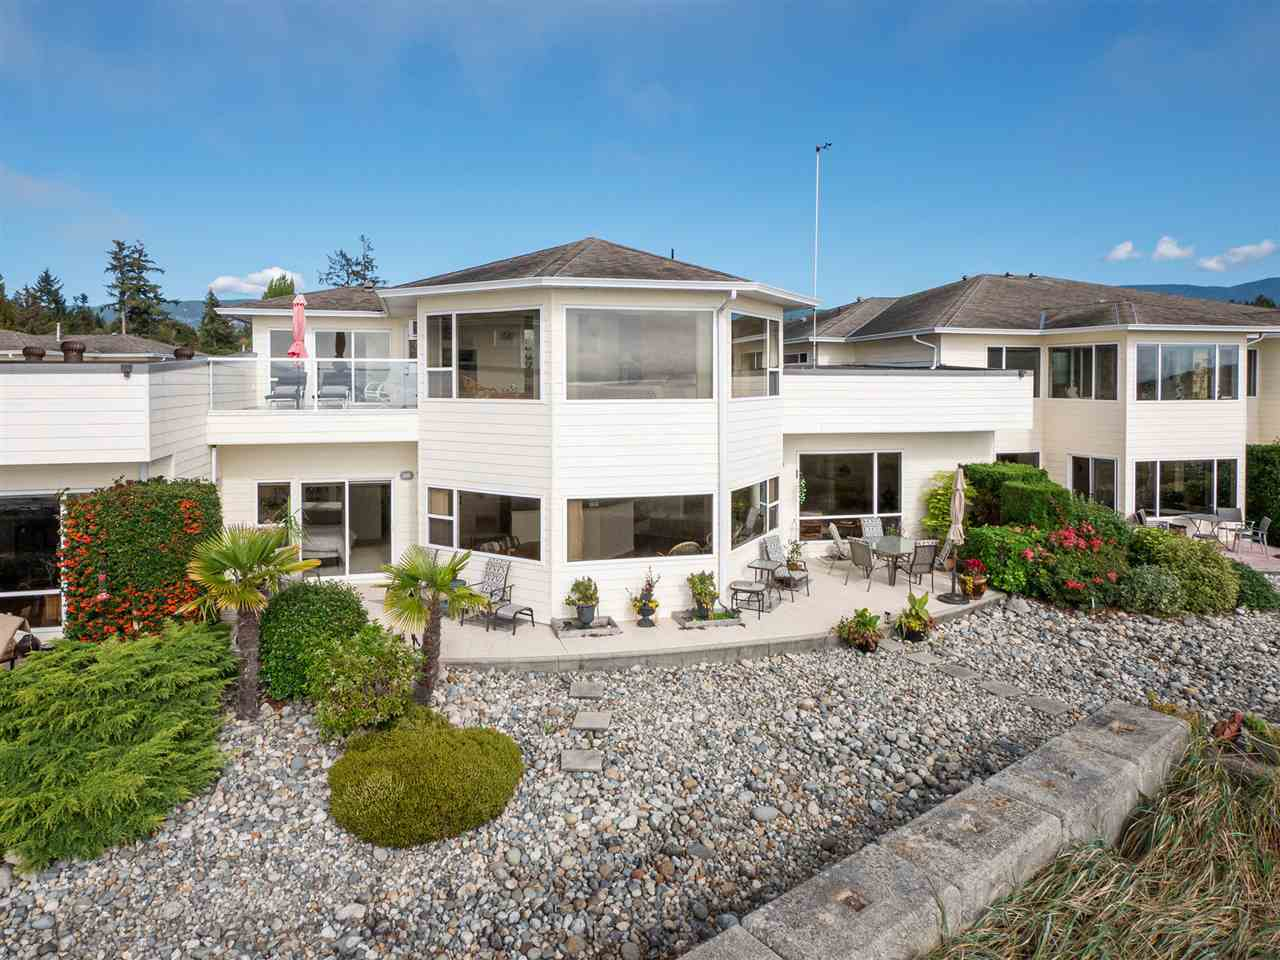 218 1585 FIELD ROAD - Sechelt District Townhouse for sale, 3 Bedrooms (R2502493)